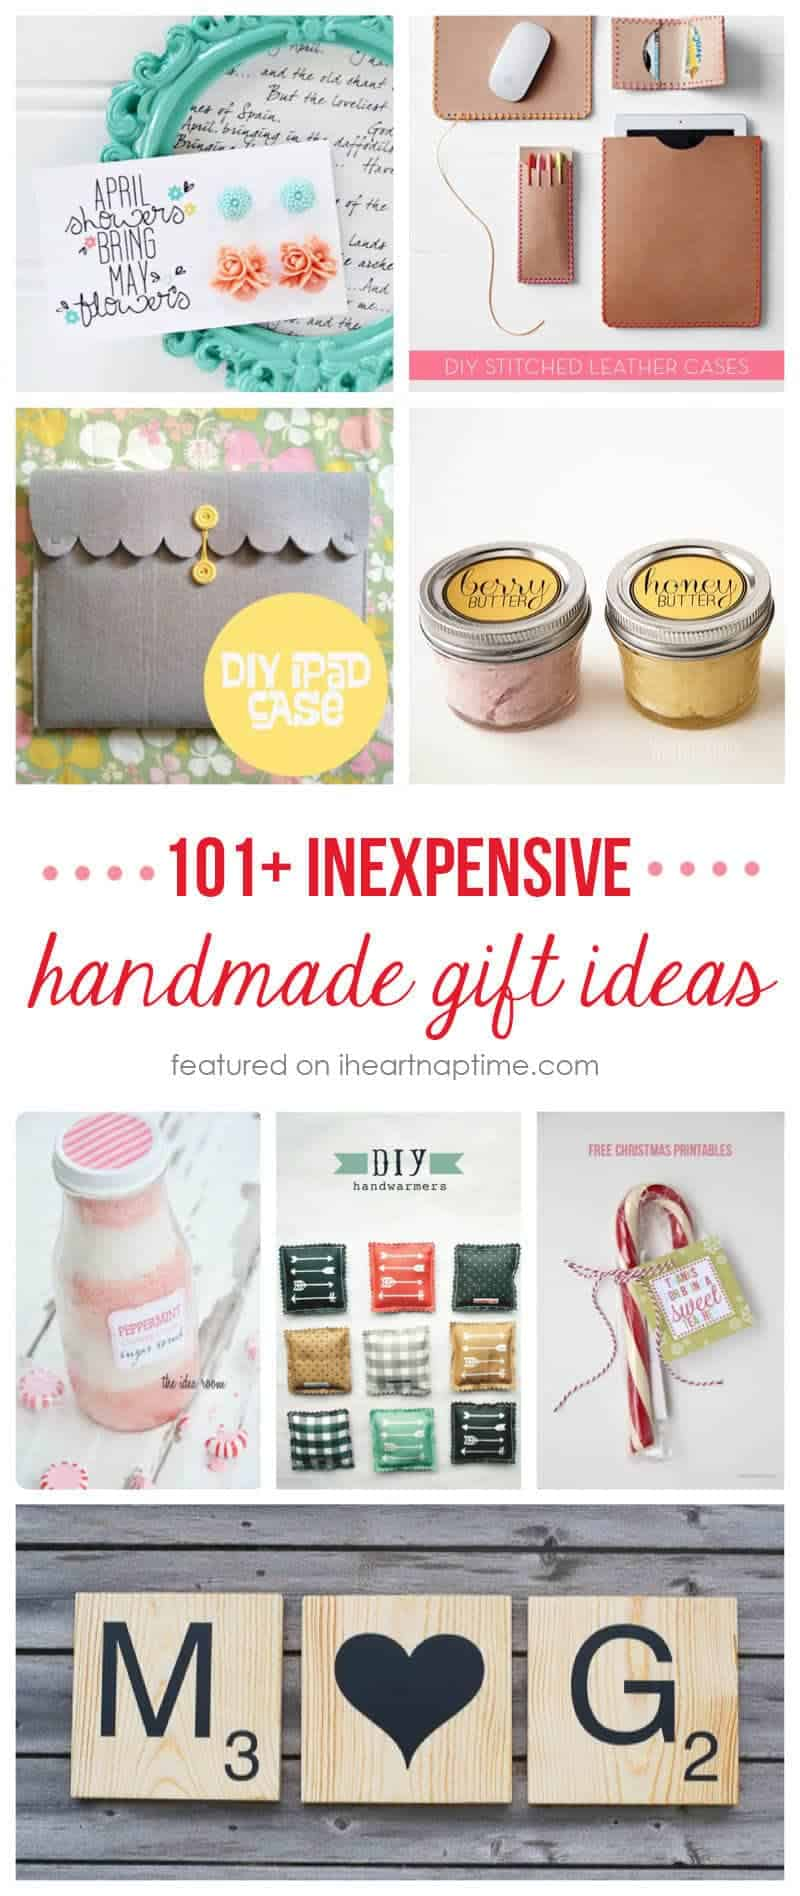 101 inexpensive handmade christmas gifts i heart nap time 101 inexpensive handmade christmas gifts on iheartnaptime solutioingenieria Choice Image